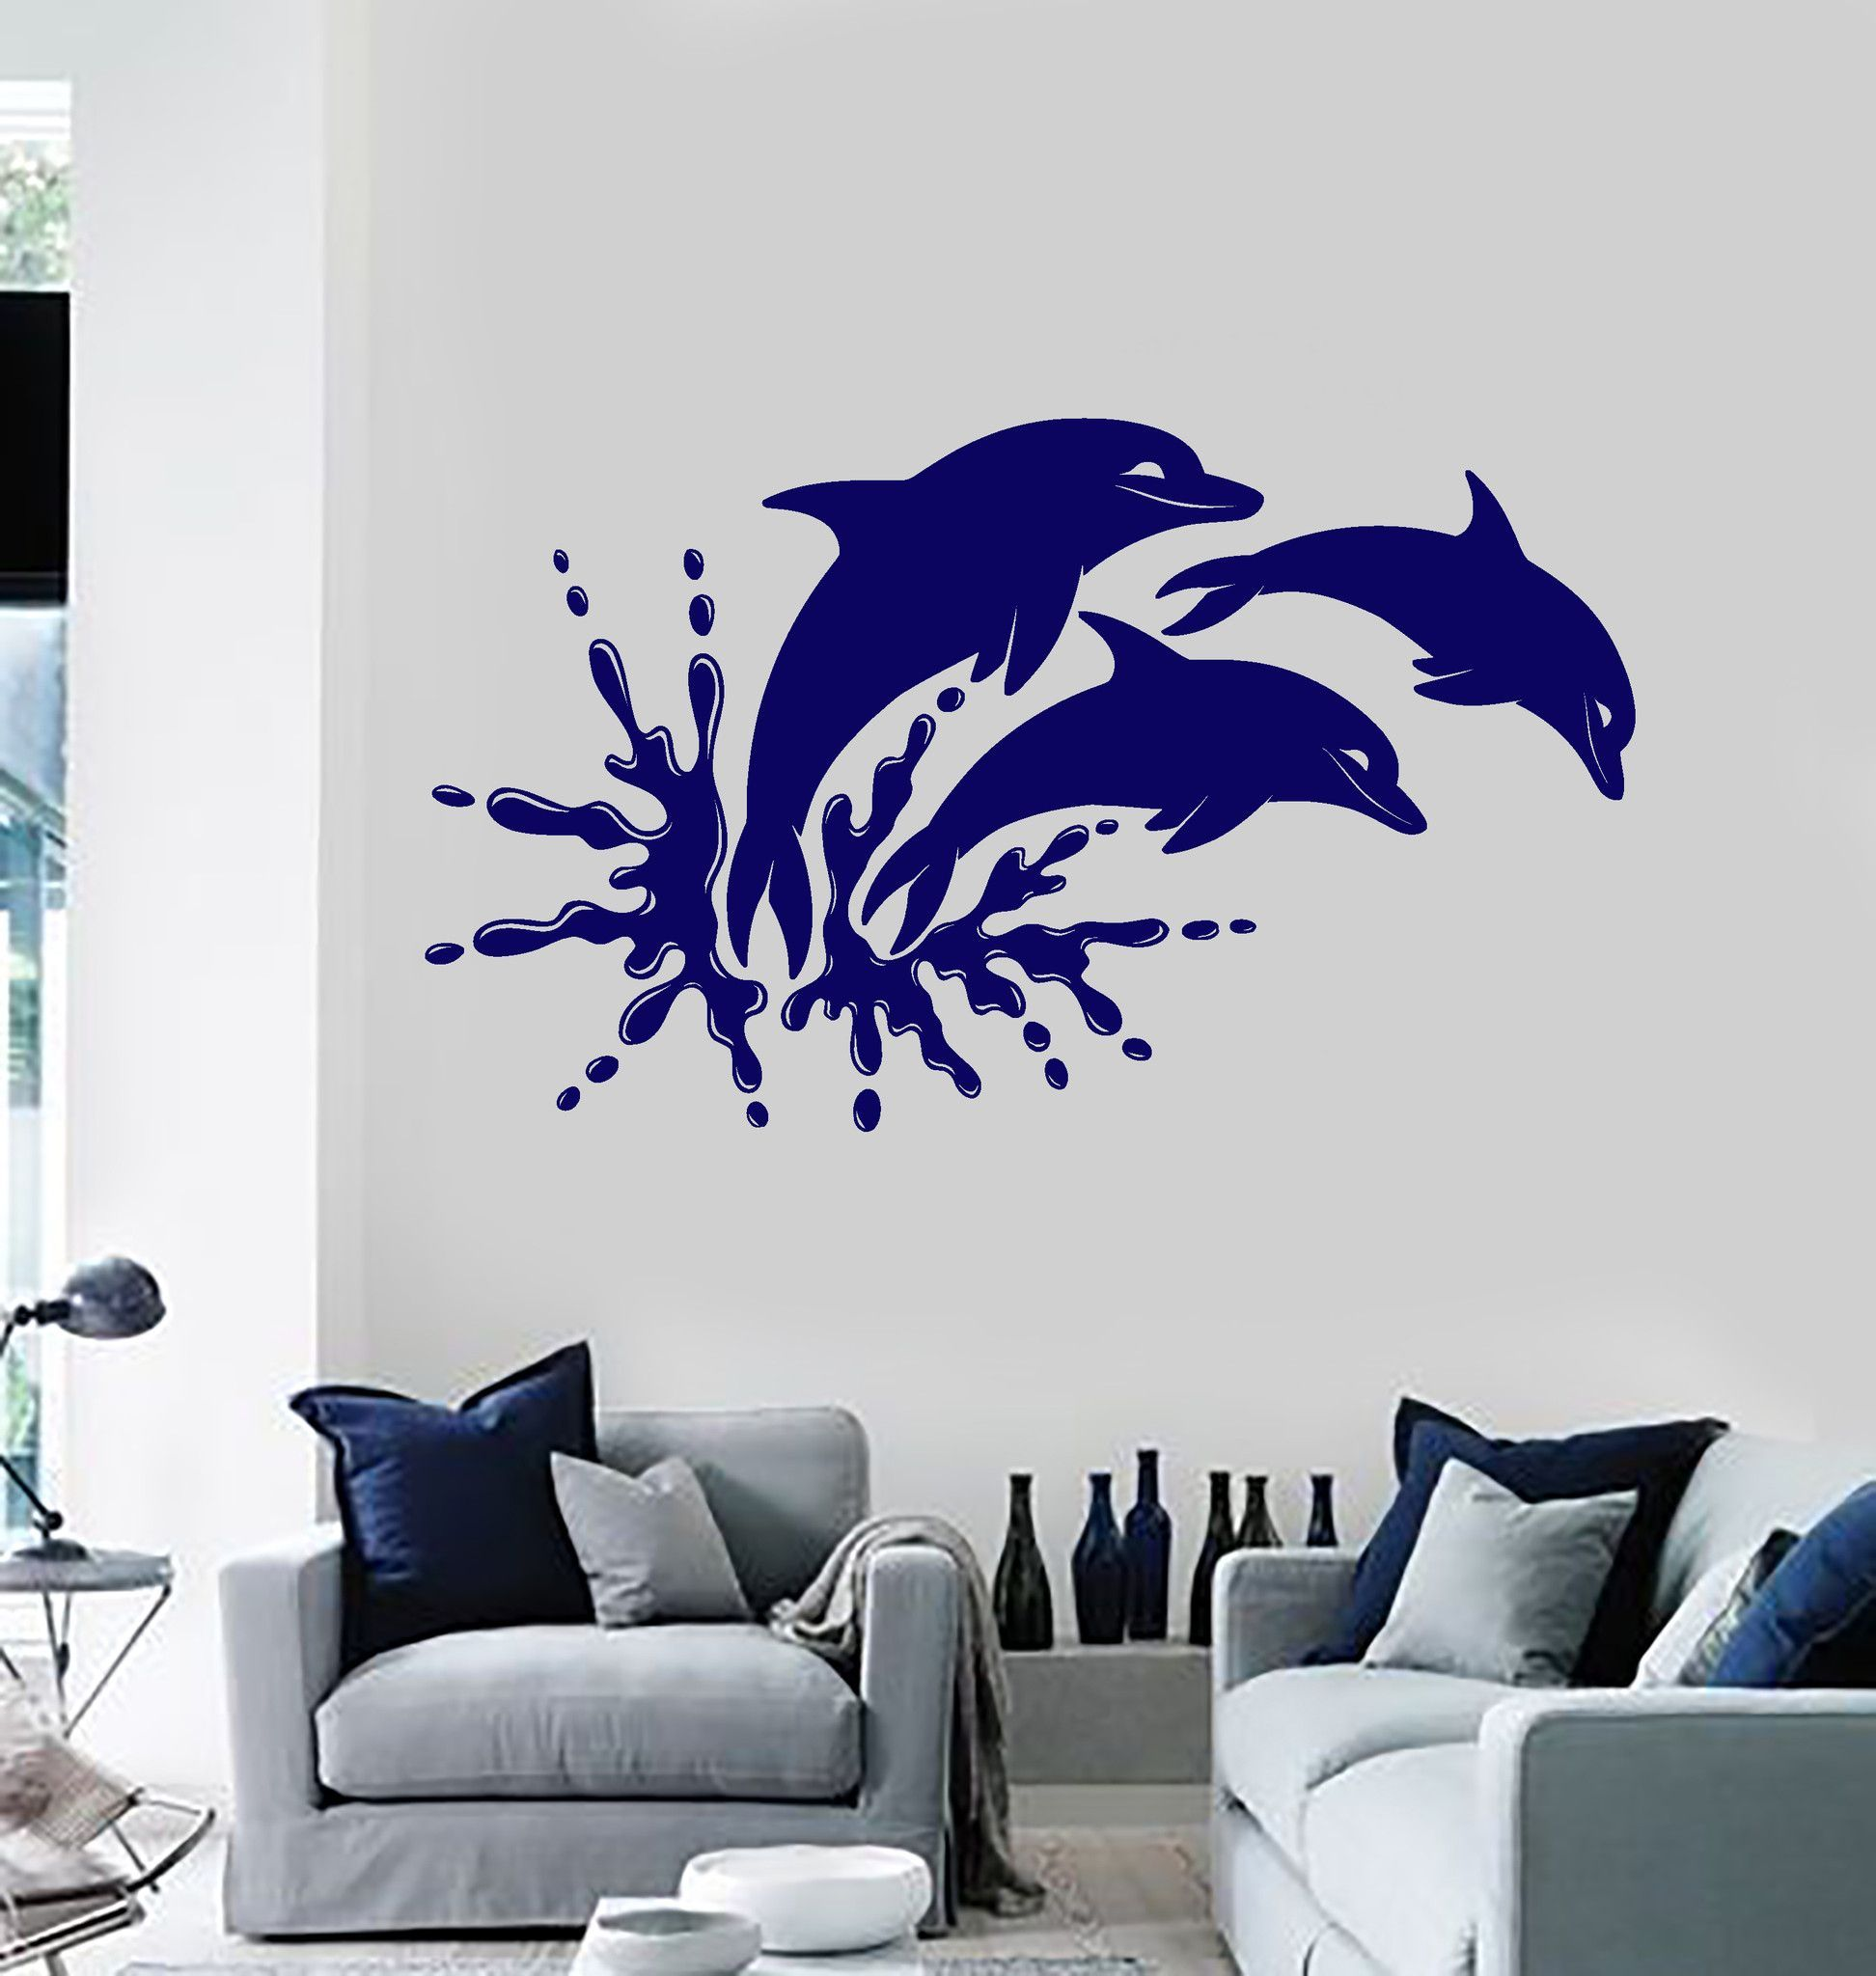 Vinyl wall decal dolphins marine animals ocean bathroom stickers vinyl wall decal dolphins marine animals ocean bathroom stickers ig4065 amipublicfo Image collections